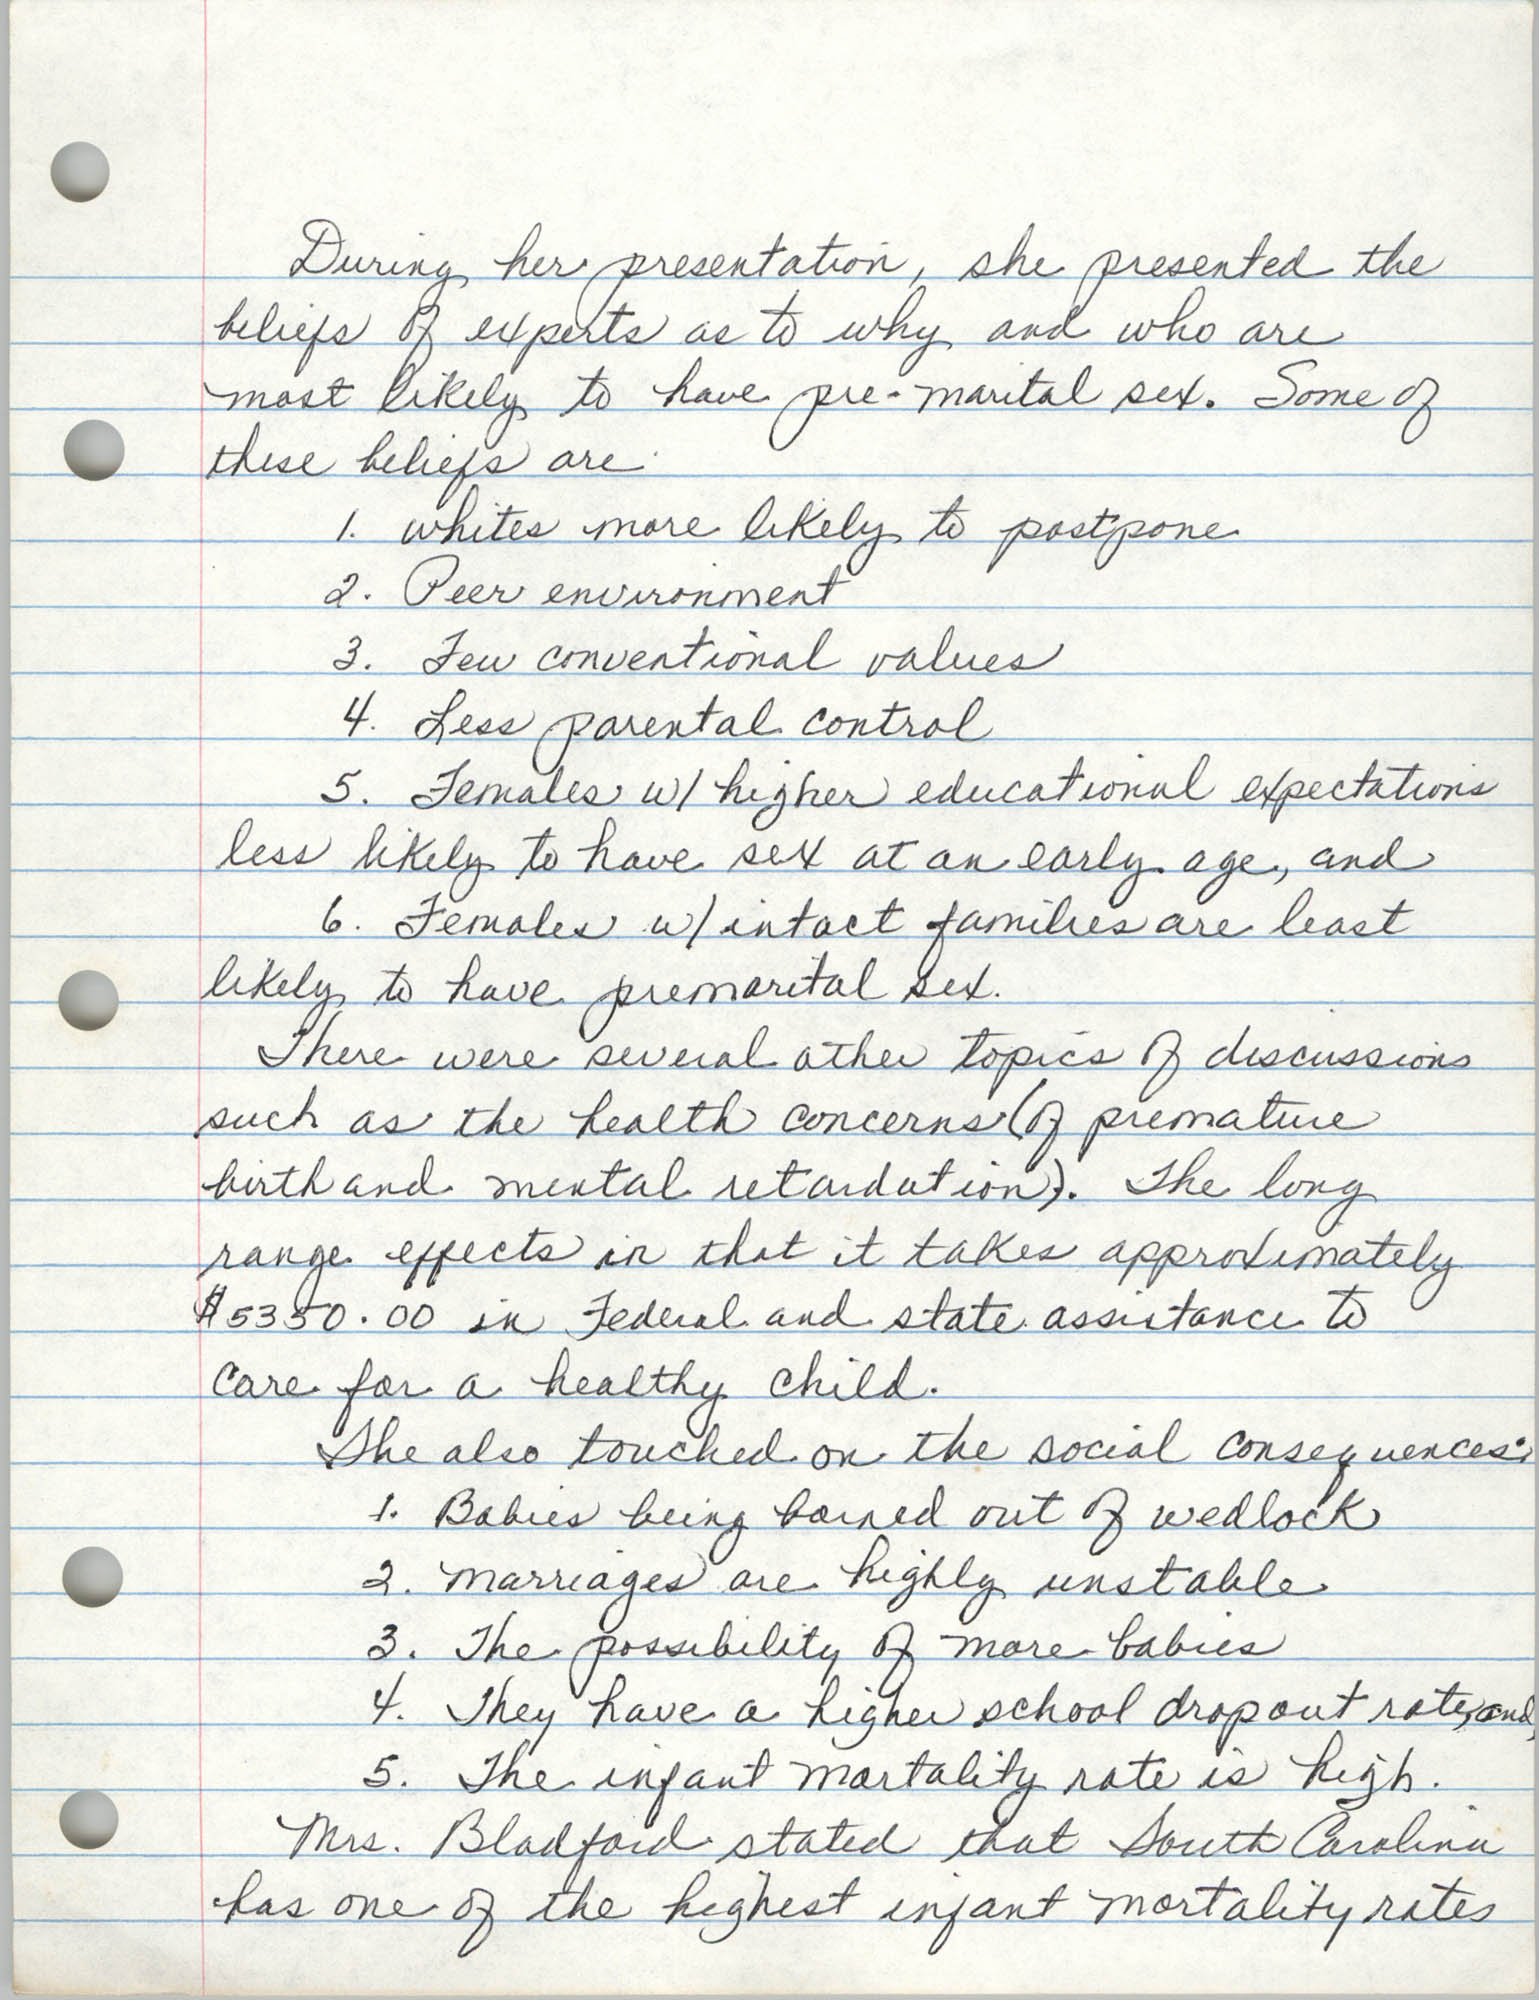 Minutes, Charleston Branch of the NAACP, General Membership Meeting, April 24, 1986, Page 2